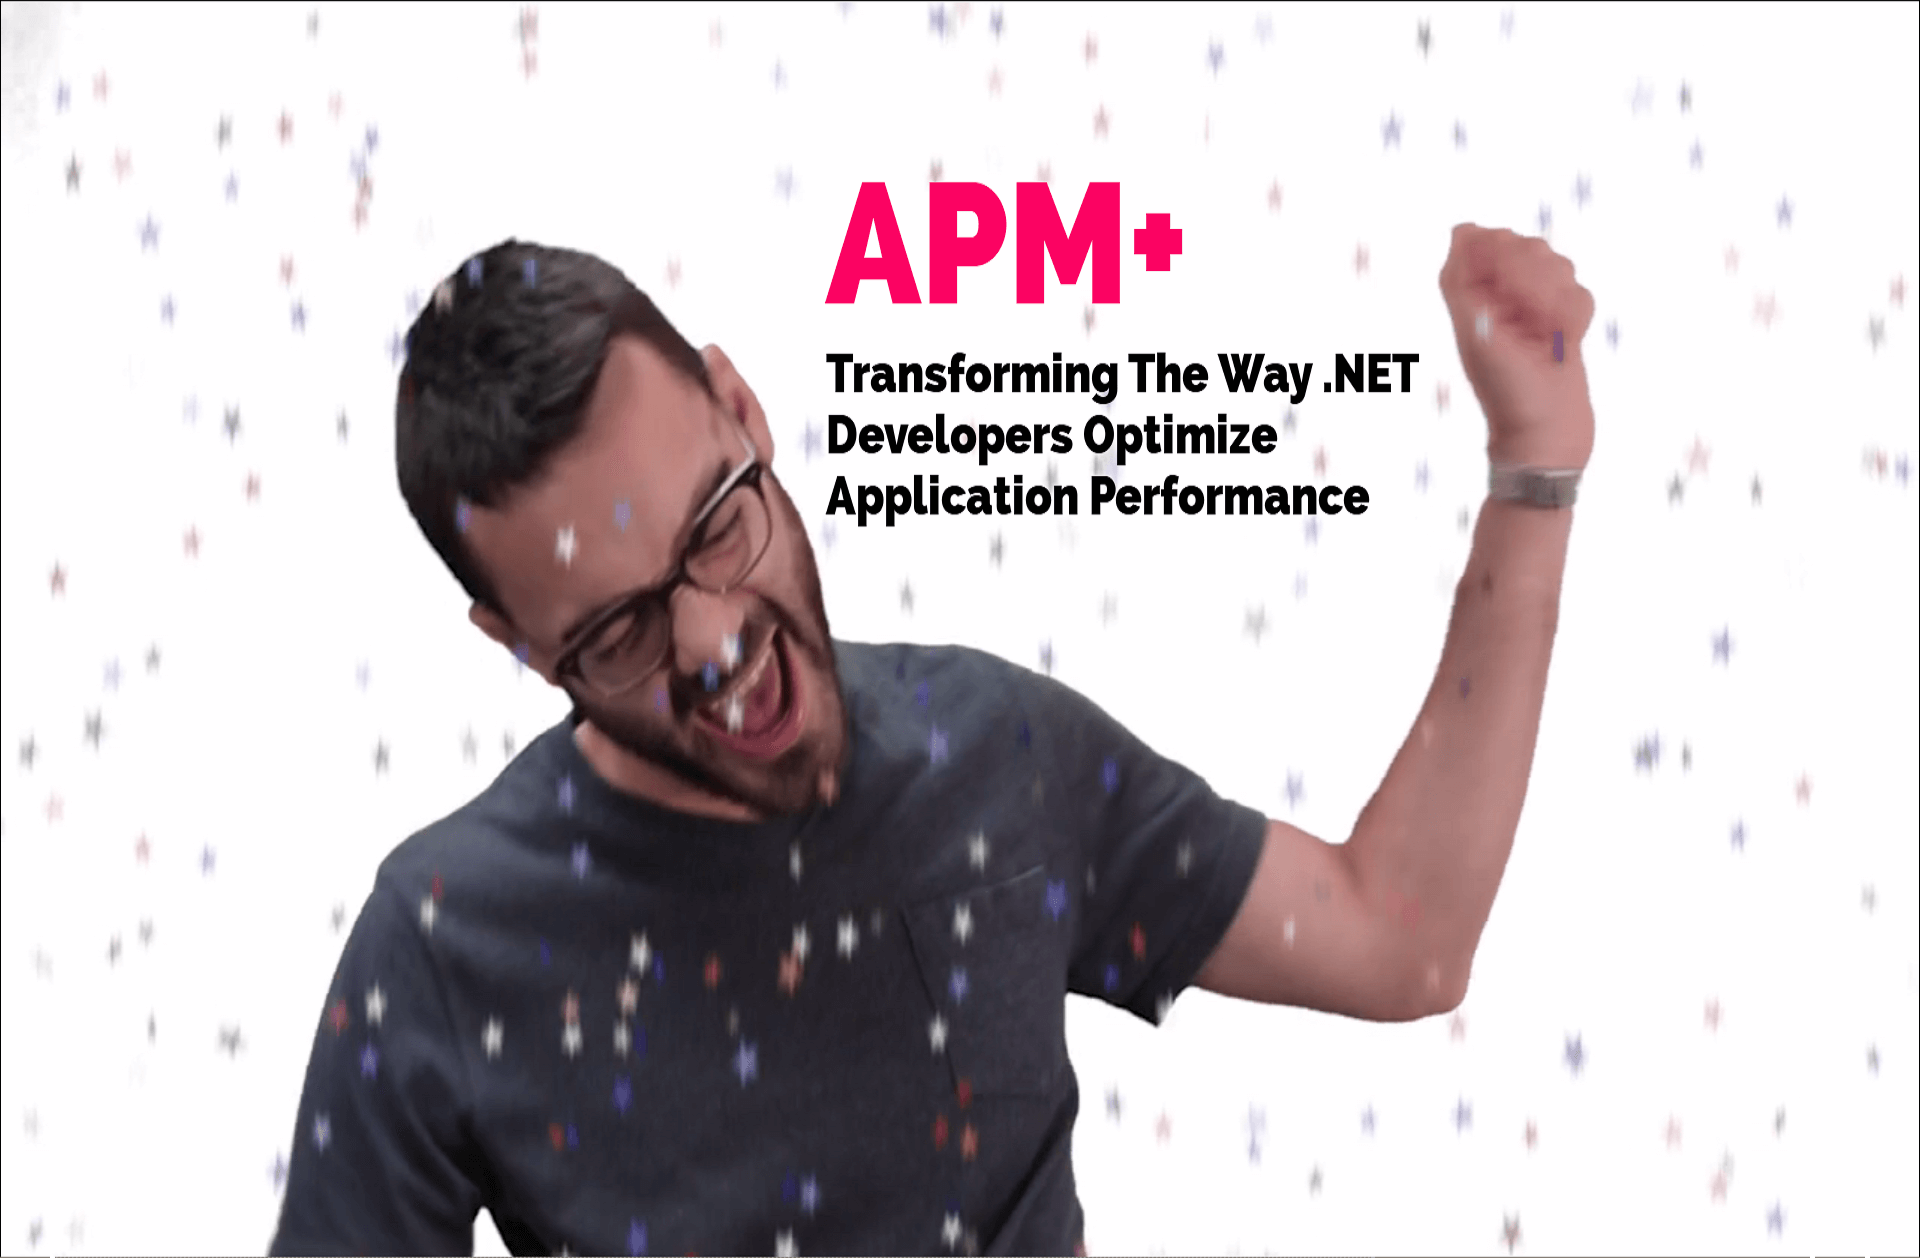 APM + the best application performance management